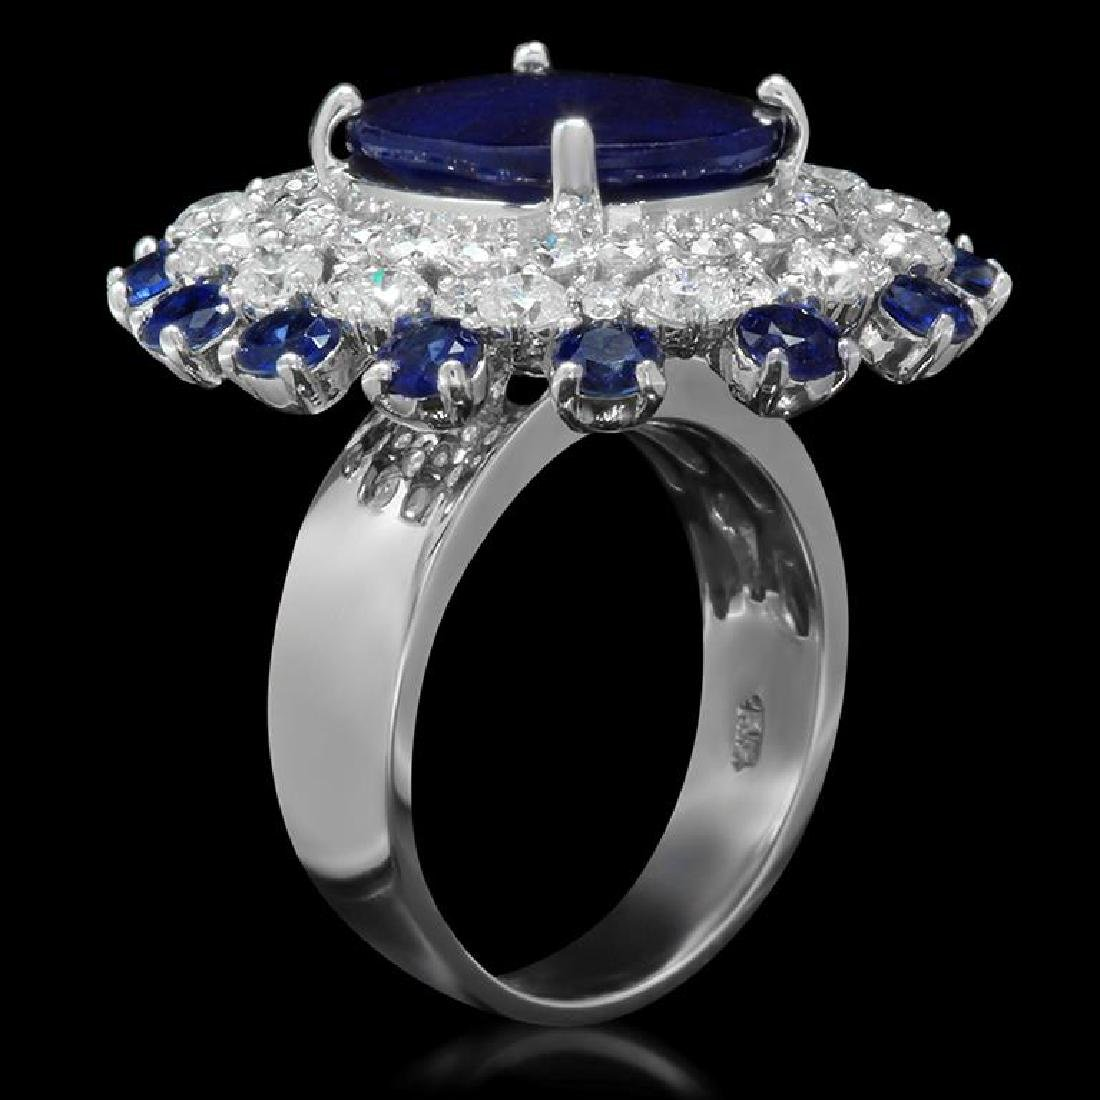 14K Gold 9.97ct Sapphire 2.31ct Diamond Ring - 2